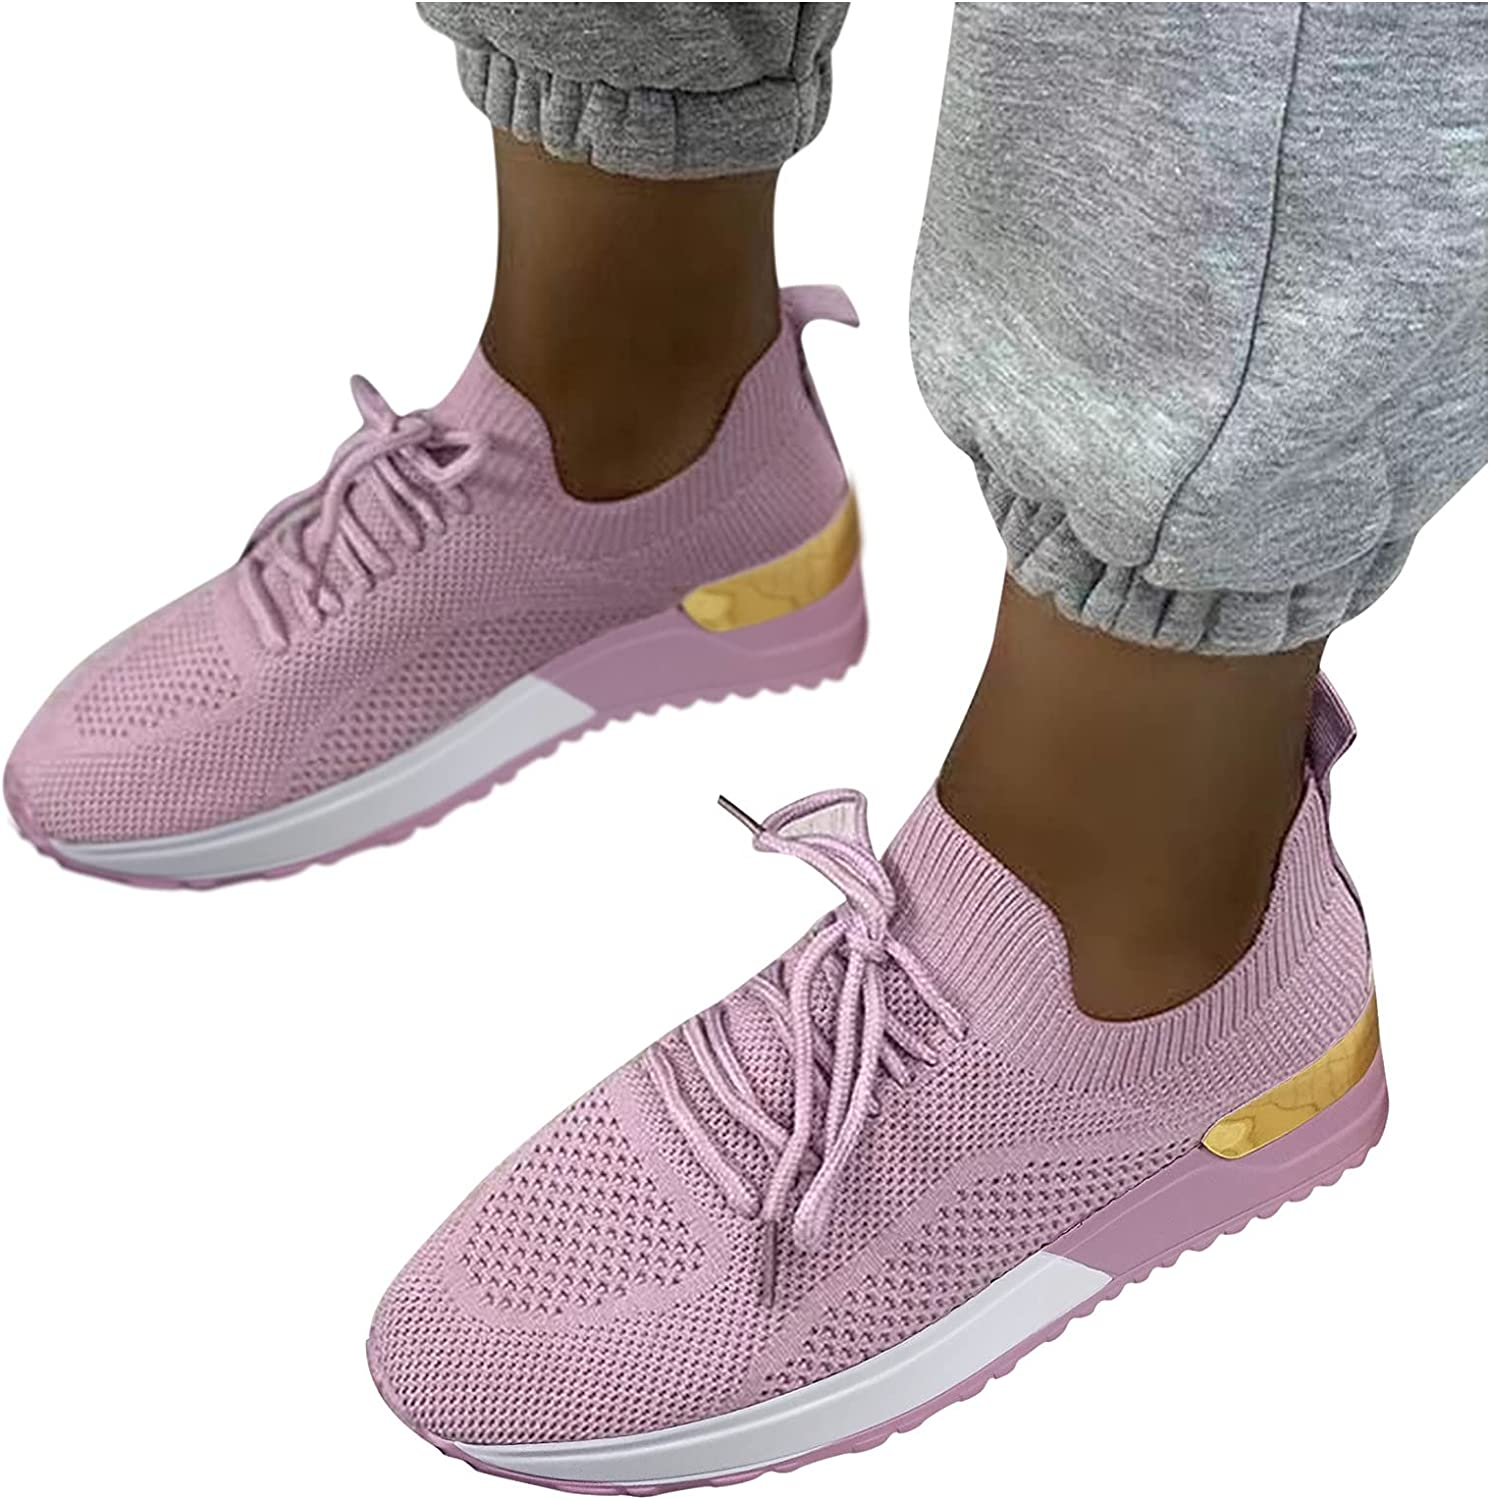 NIMIZIA Walking Shoes for Women,Women Breathable Mesh Comfortable Shoes Slip On Casual Sport Shoes Runnig Shoes Office Loafer